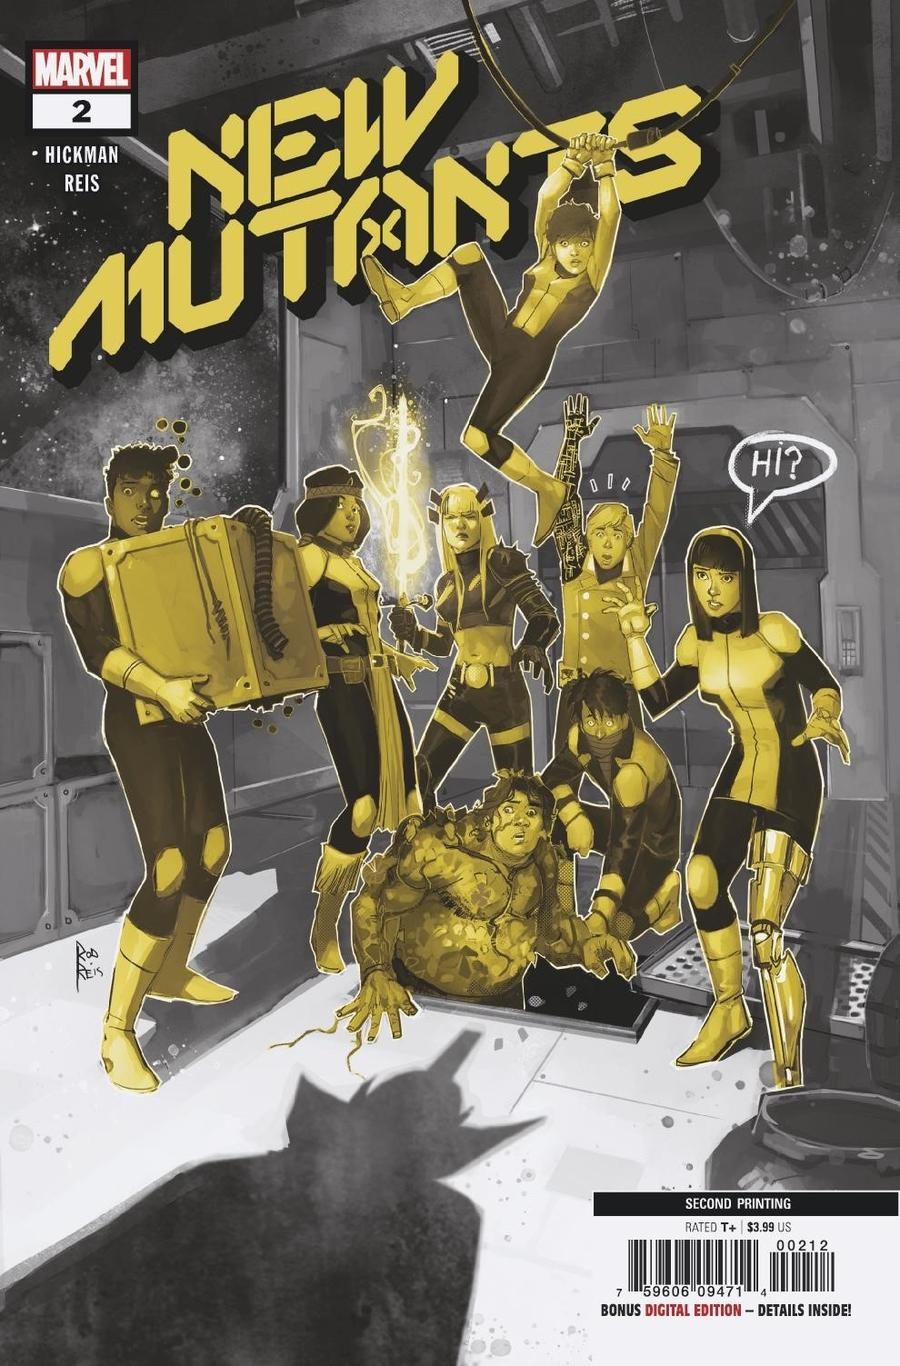 New Mutants Vol 4 #2 Cover C 2nd Ptg Variant Rod Reis Cover (Dawn of X Tie-In)